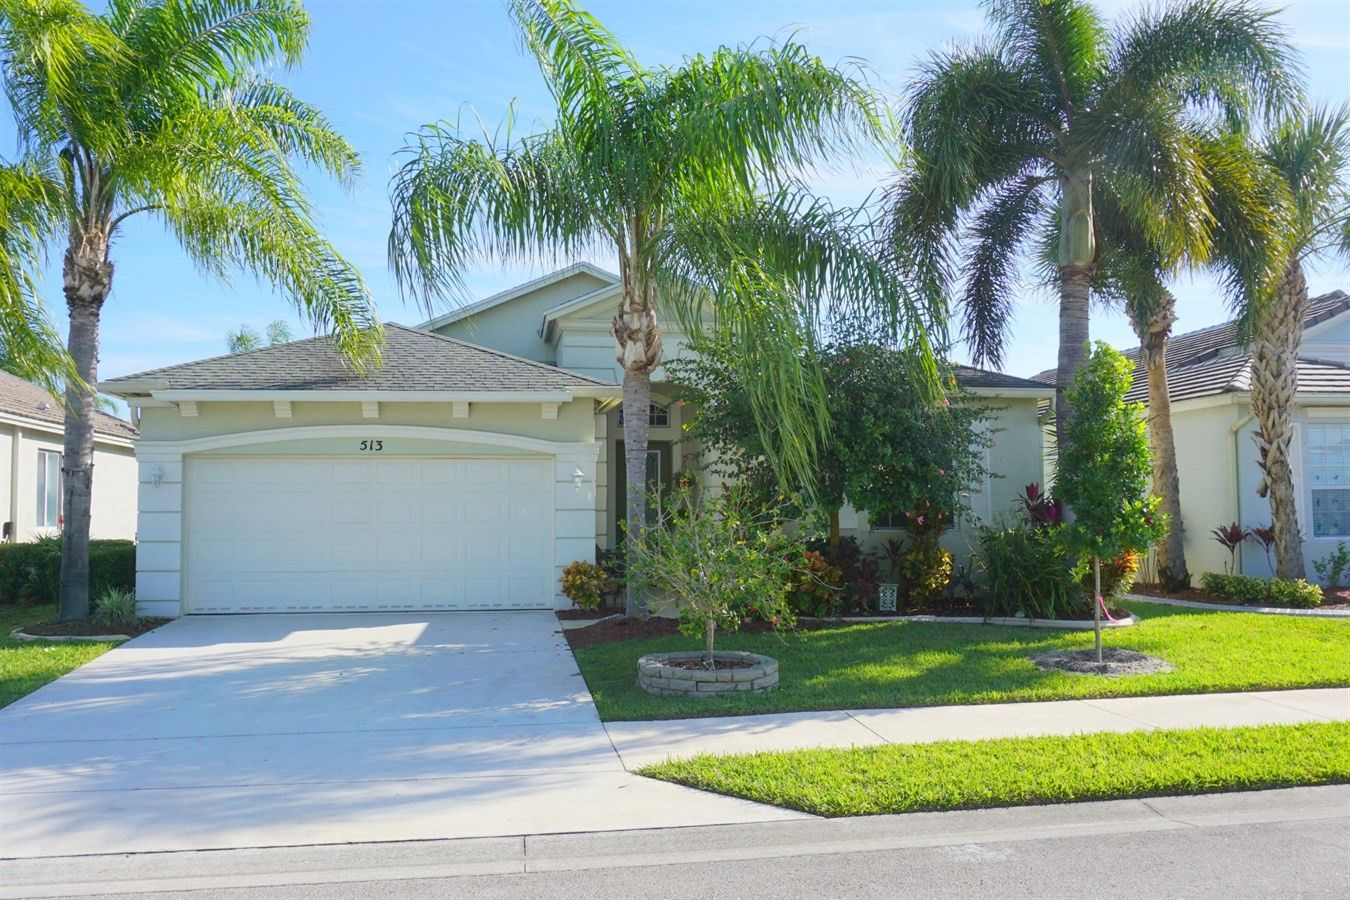 I Love This Place Florida Real Estate Port St Lucie Port St Lucie Florida